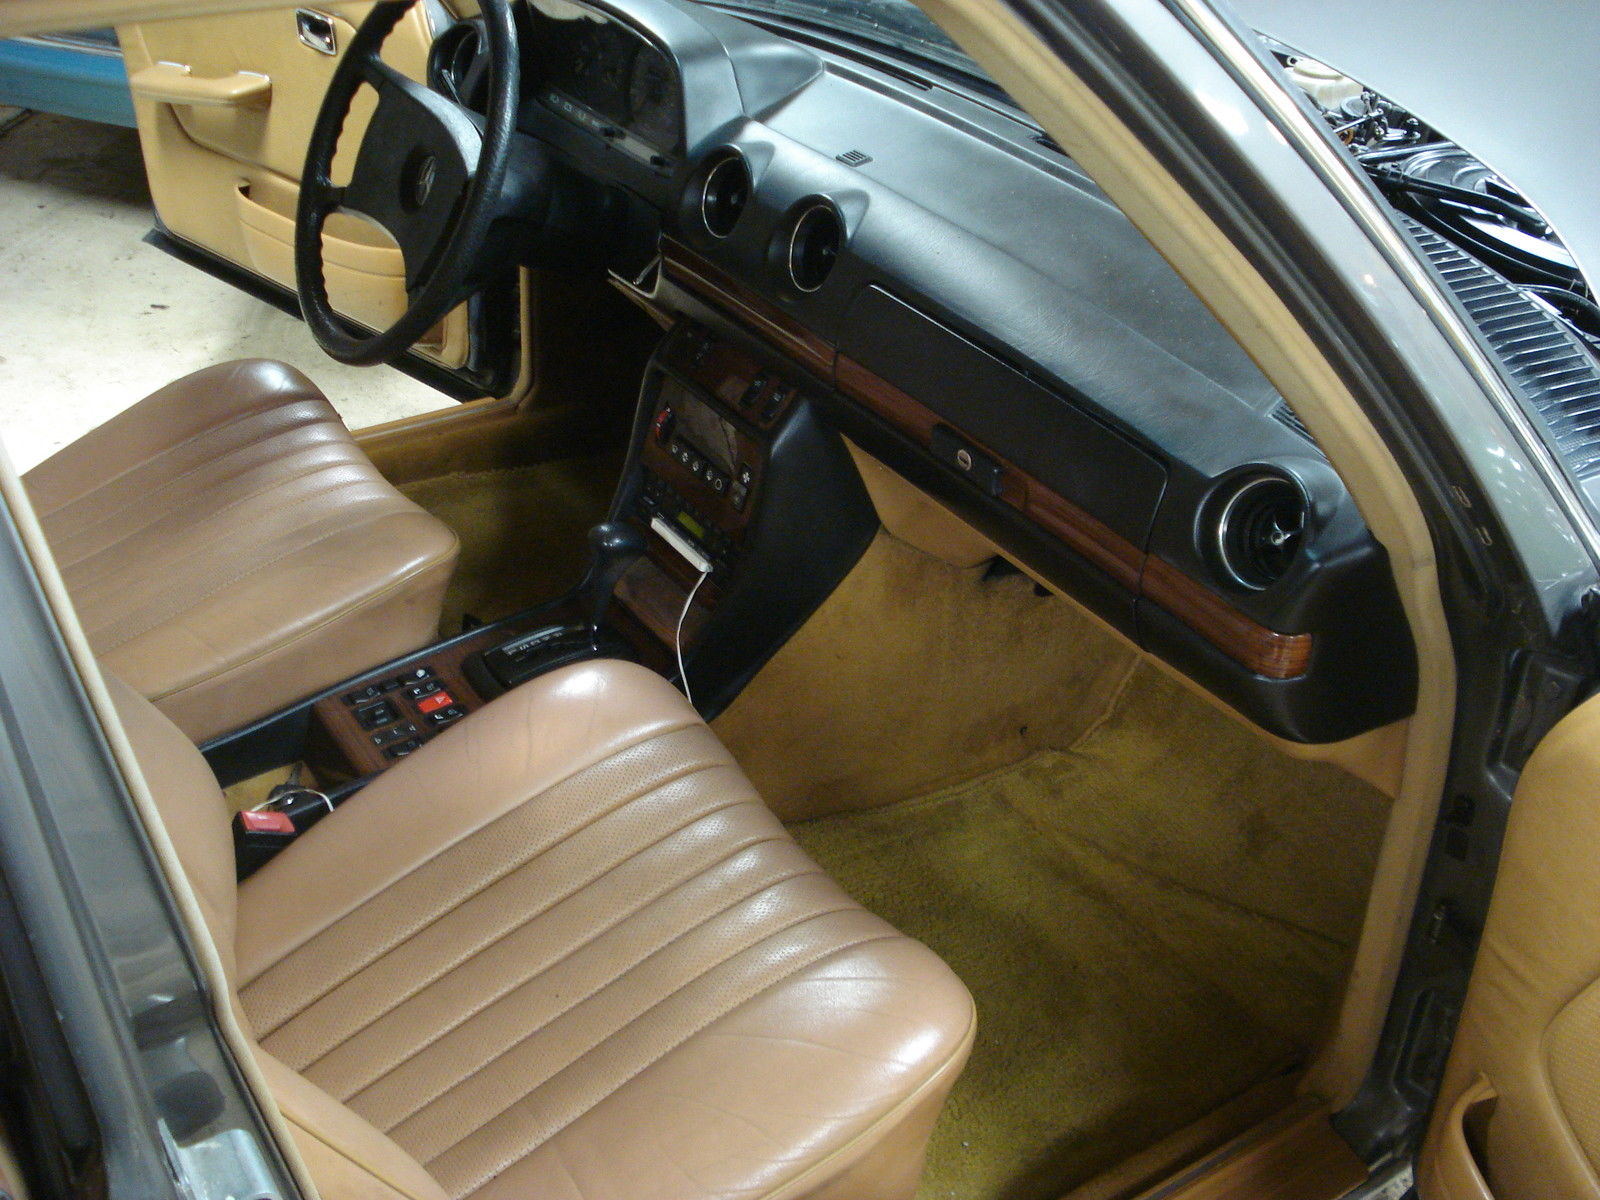 1985 mercedes 300d turbo diesel anthracite grey with palomino interior classic mercedes benz. Black Bedroom Furniture Sets. Home Design Ideas